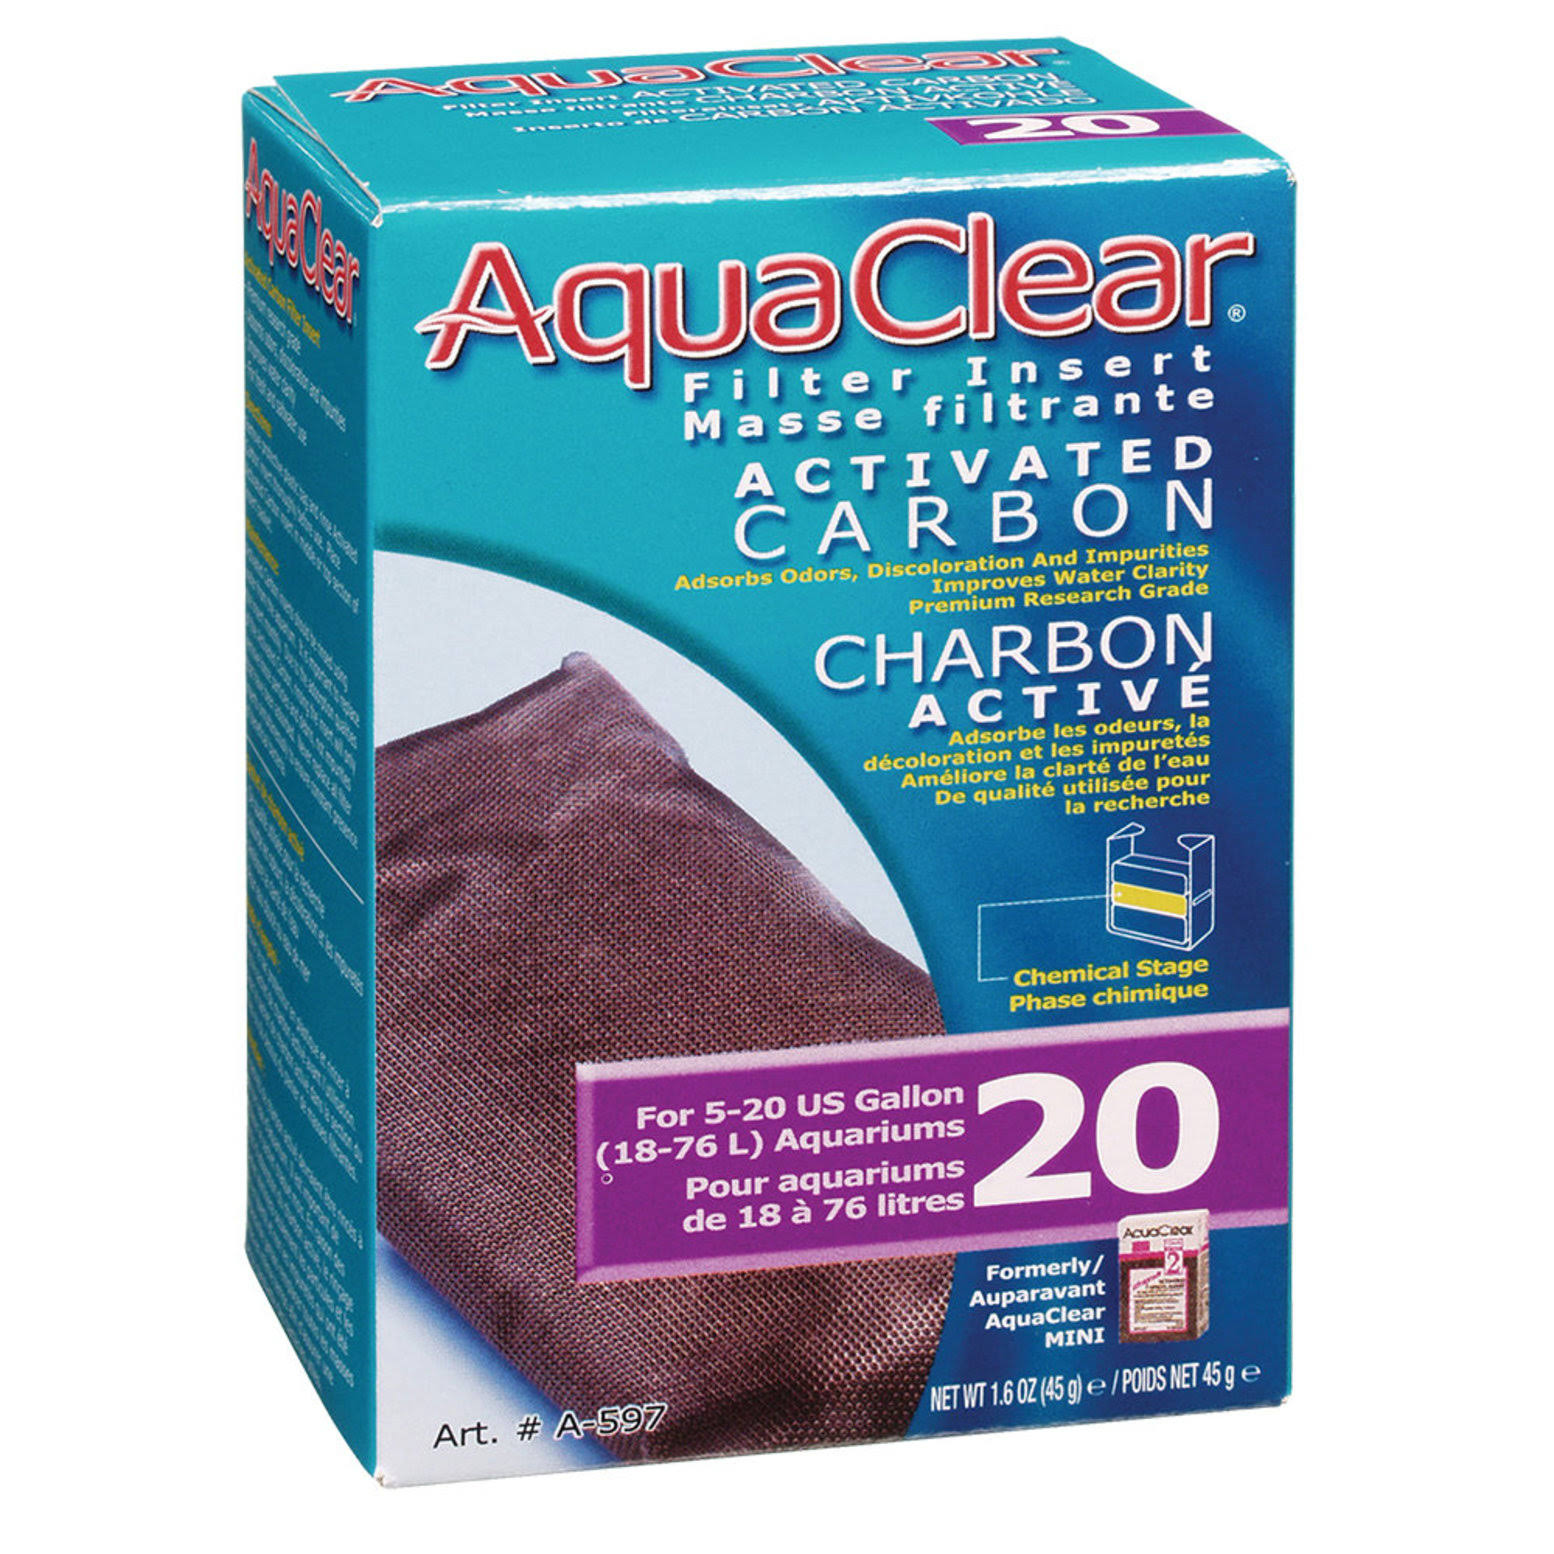 AquaClear Activated Carbon Filter Insert - 20 Count